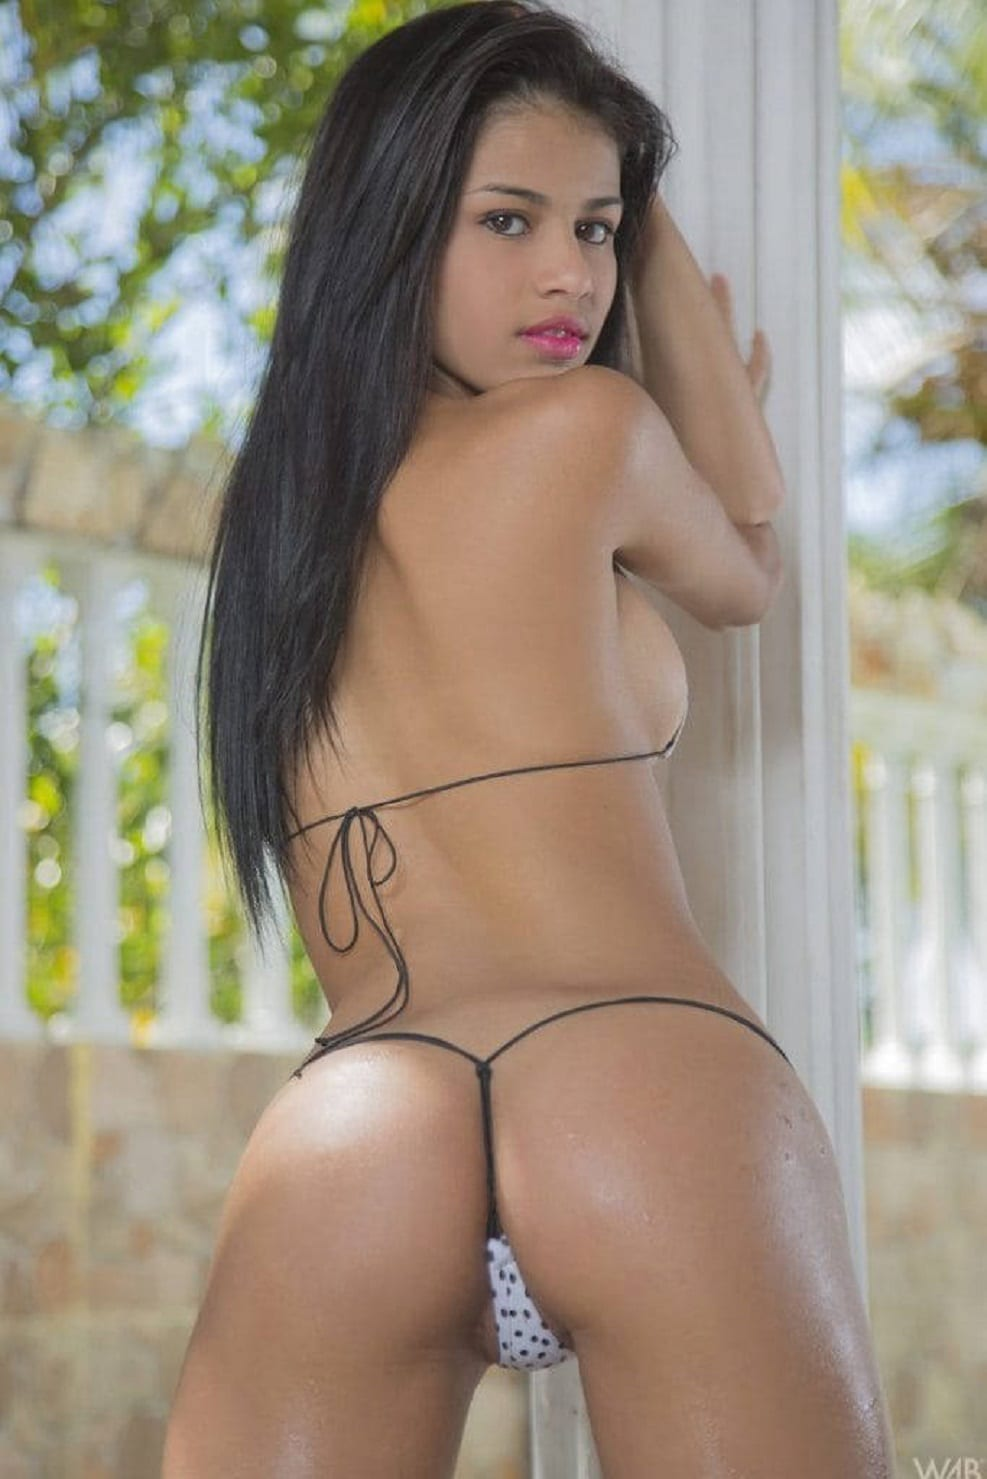 latina-girl-pics-group-sexy-woman